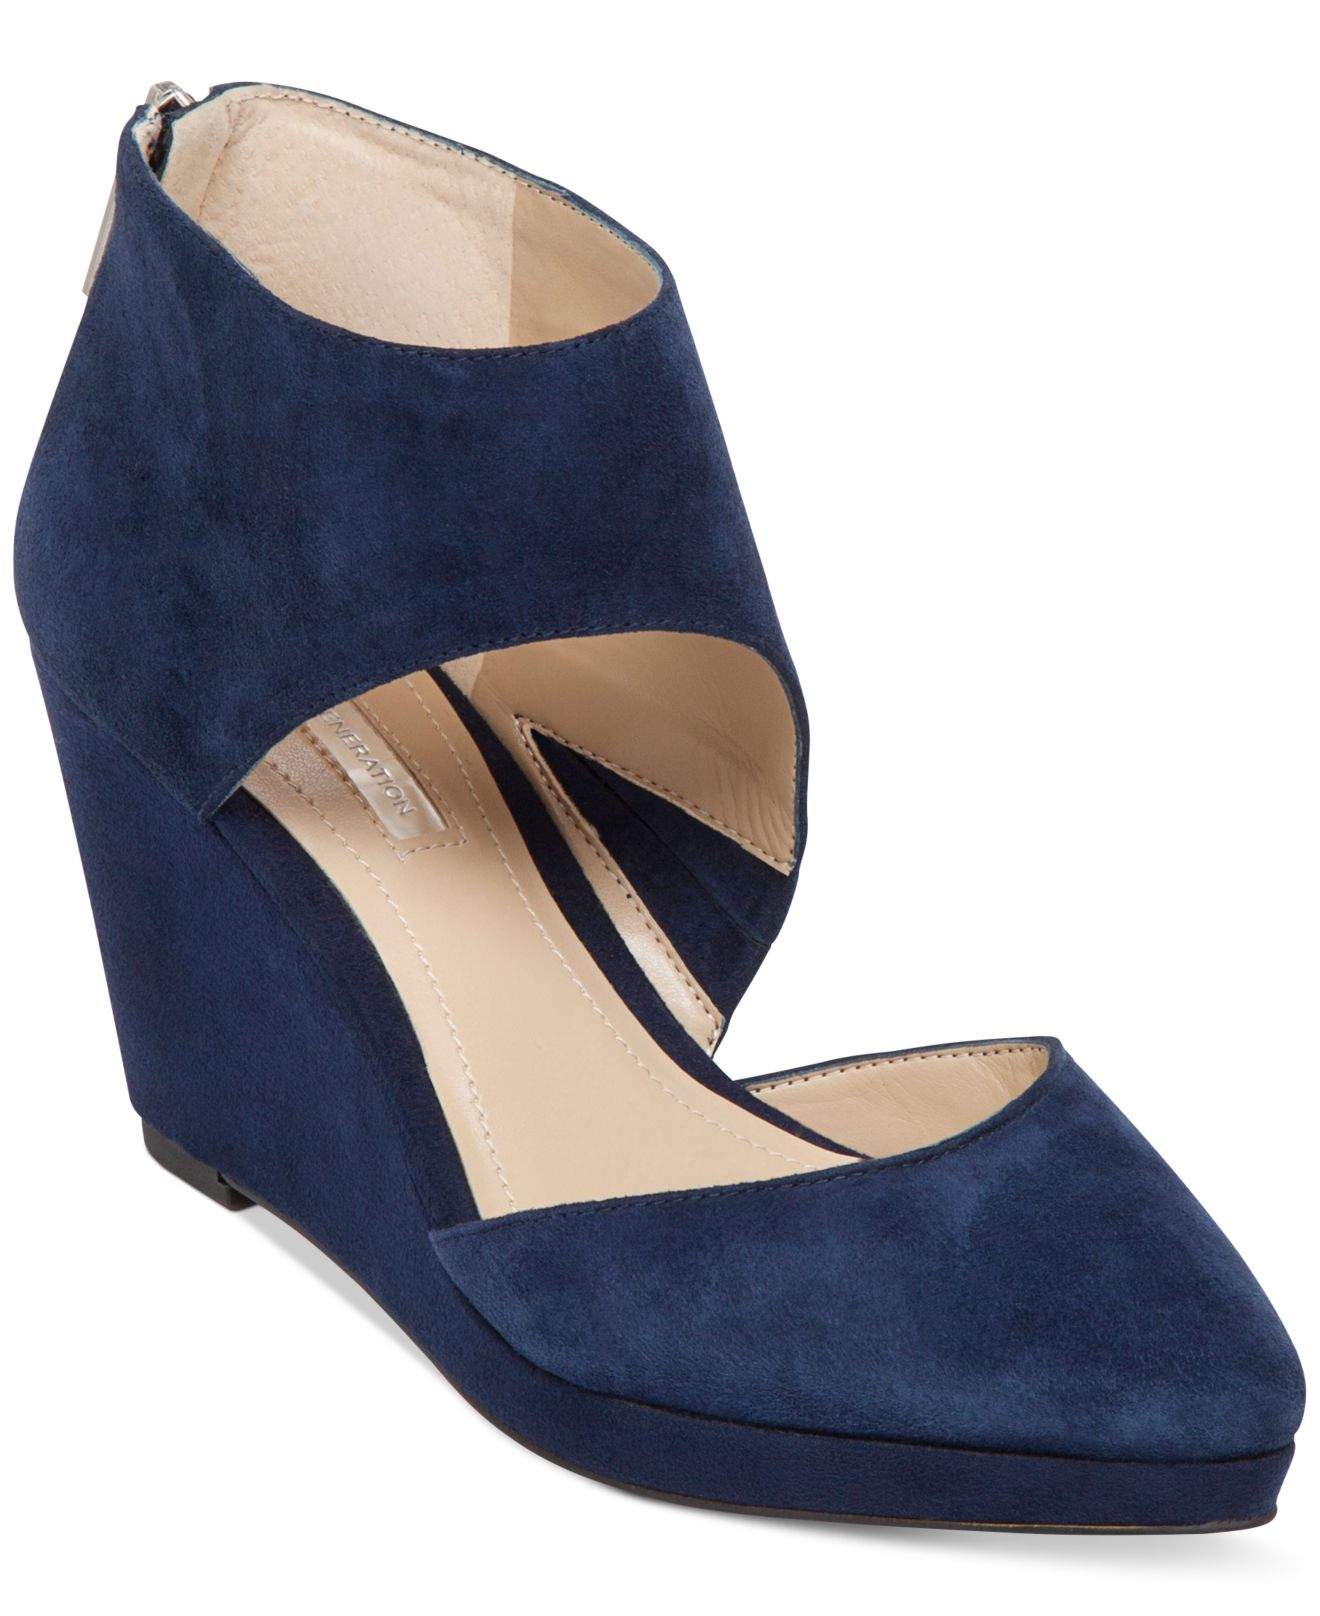 Bcbgeneration Millbook Suede Wedge Booties In Blue Lyst